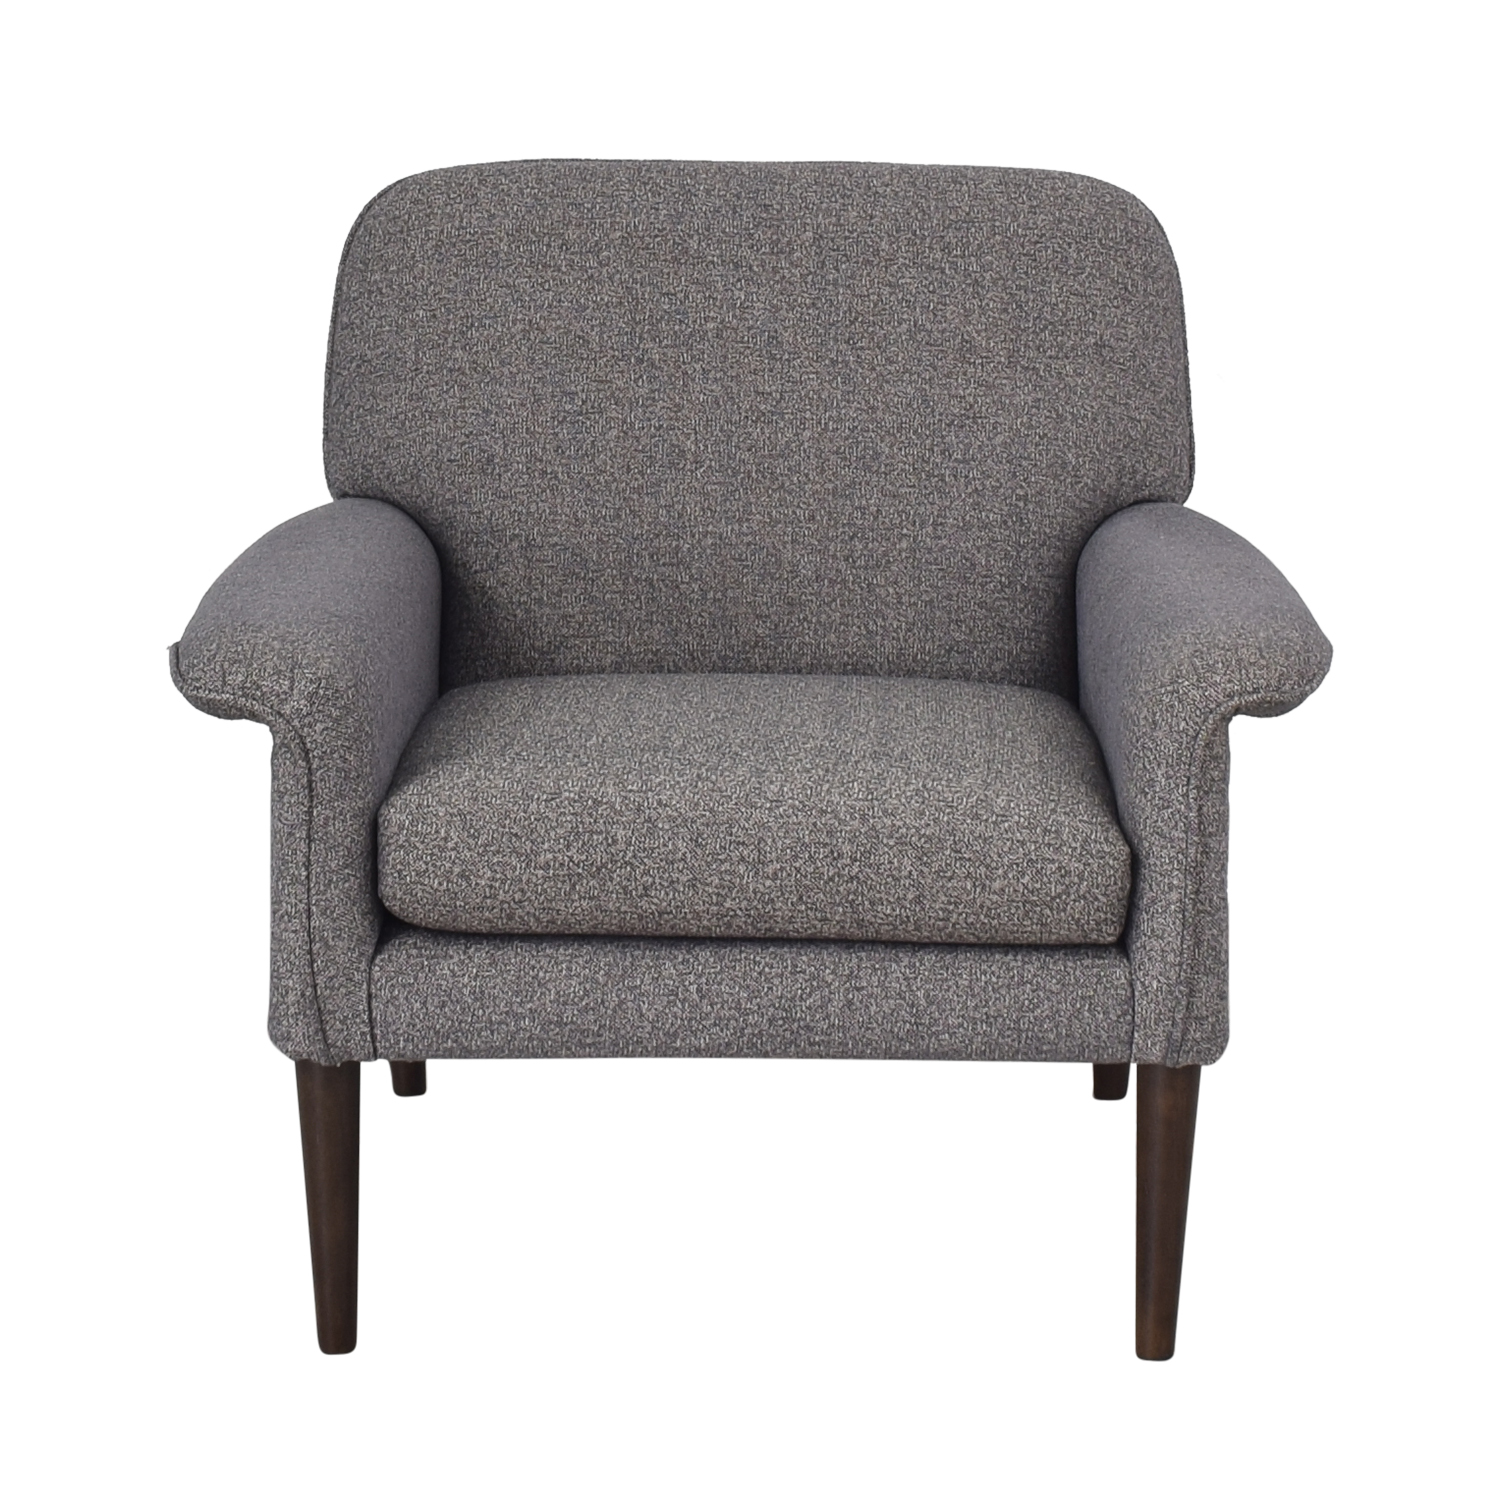 West Elm West Elm Anders Armchair used